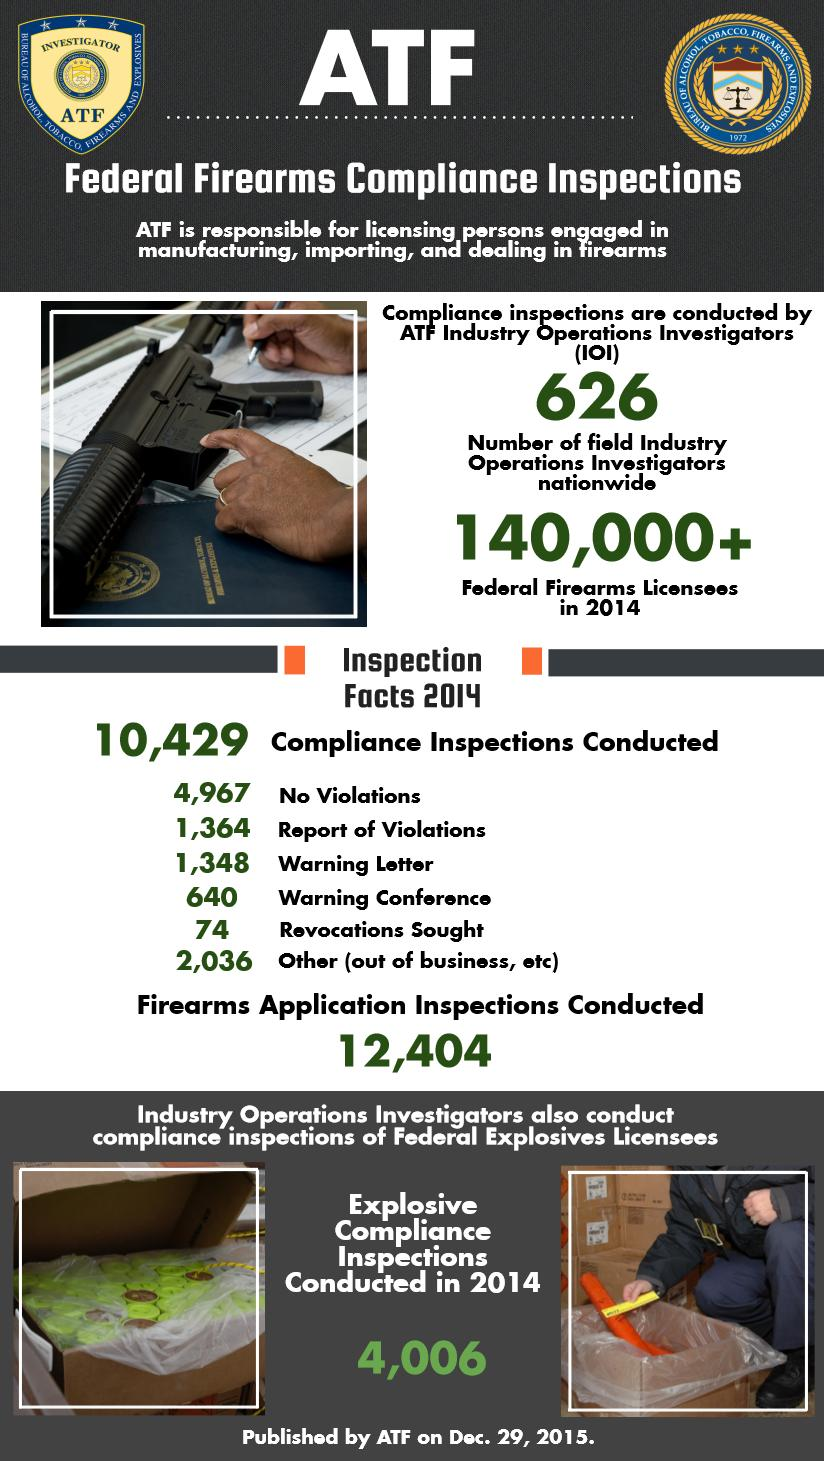 ATF Federal Firearms Compliance Inspections: ATF is responsible for licensing persons engaged in manufacturing, importing, and dealing in firearms. Compliance inspections are conducted by ATF Industry Operations Investigators.